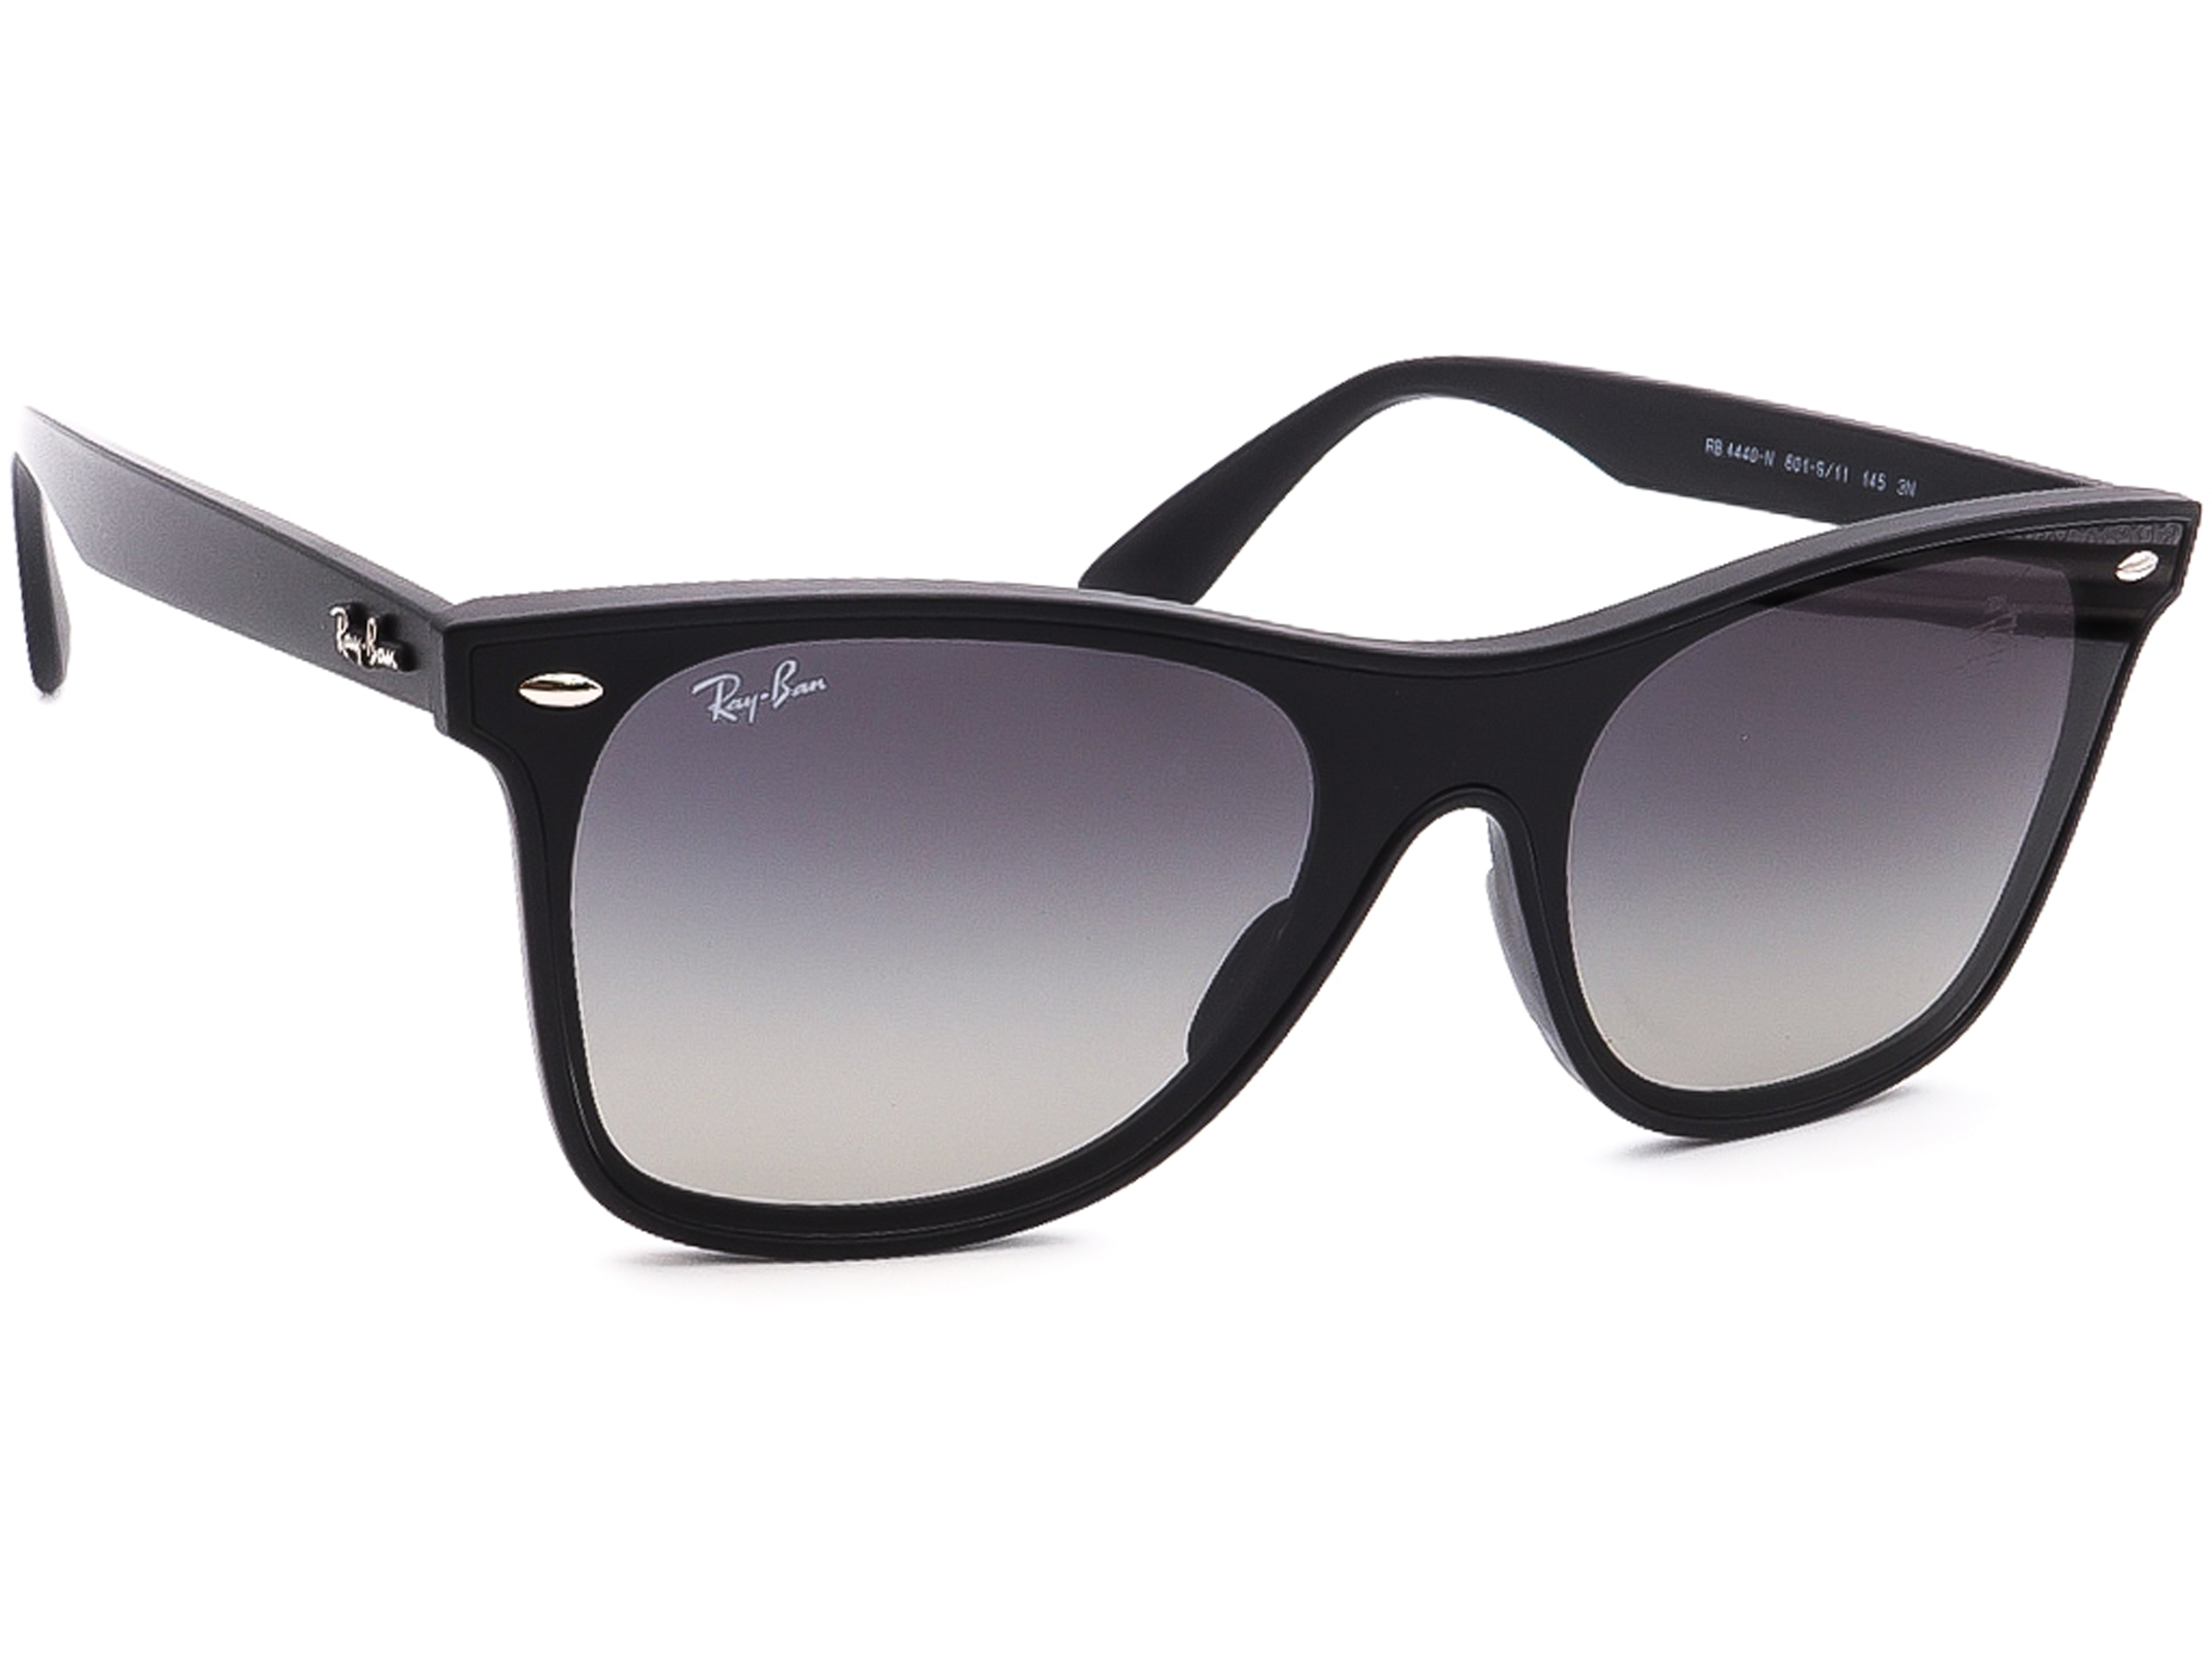 Ray Ban RB 4440-N 601-S/11 3N Sunglasses